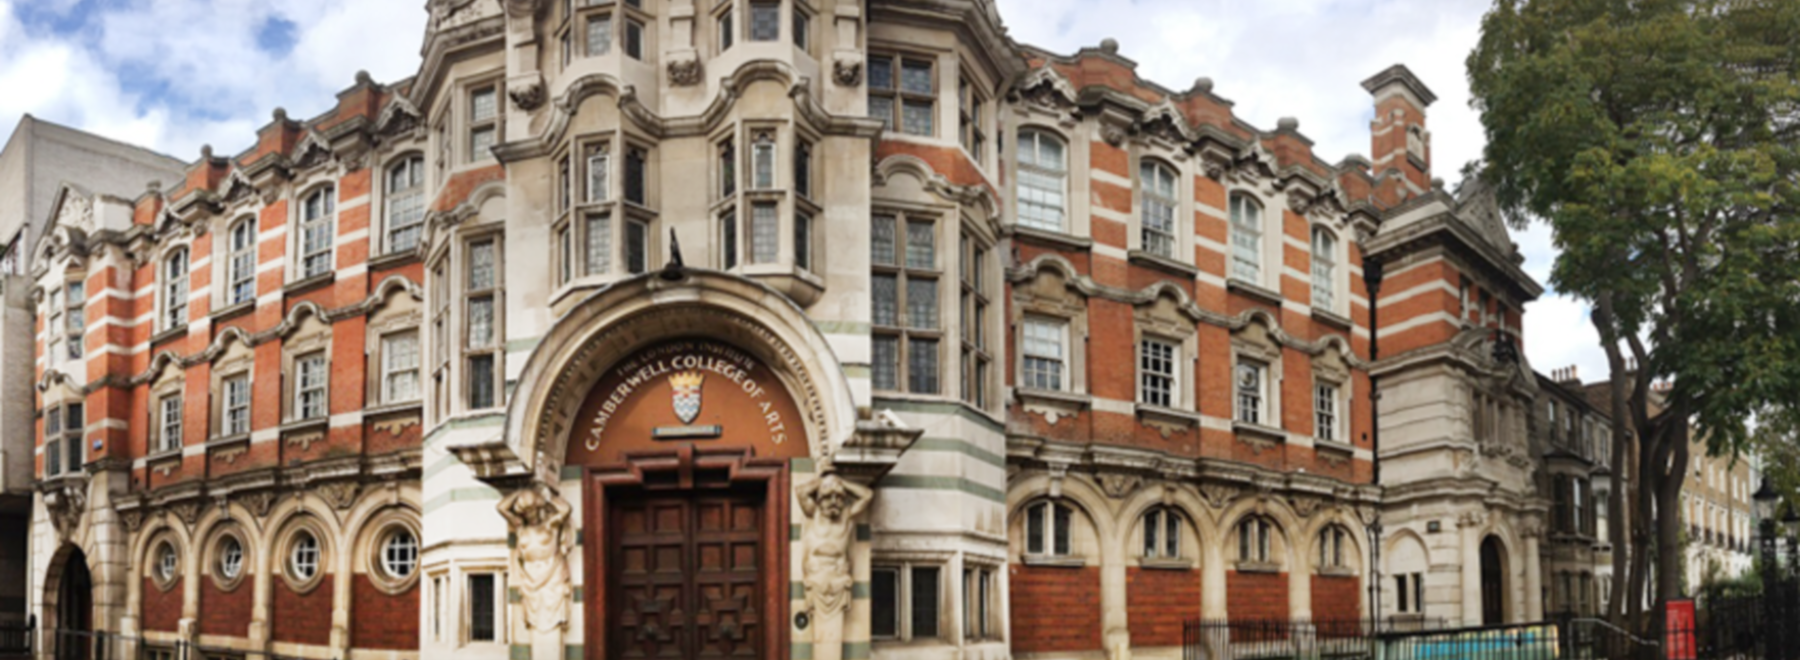 Camberwell College of Arts, University of the Arts London header